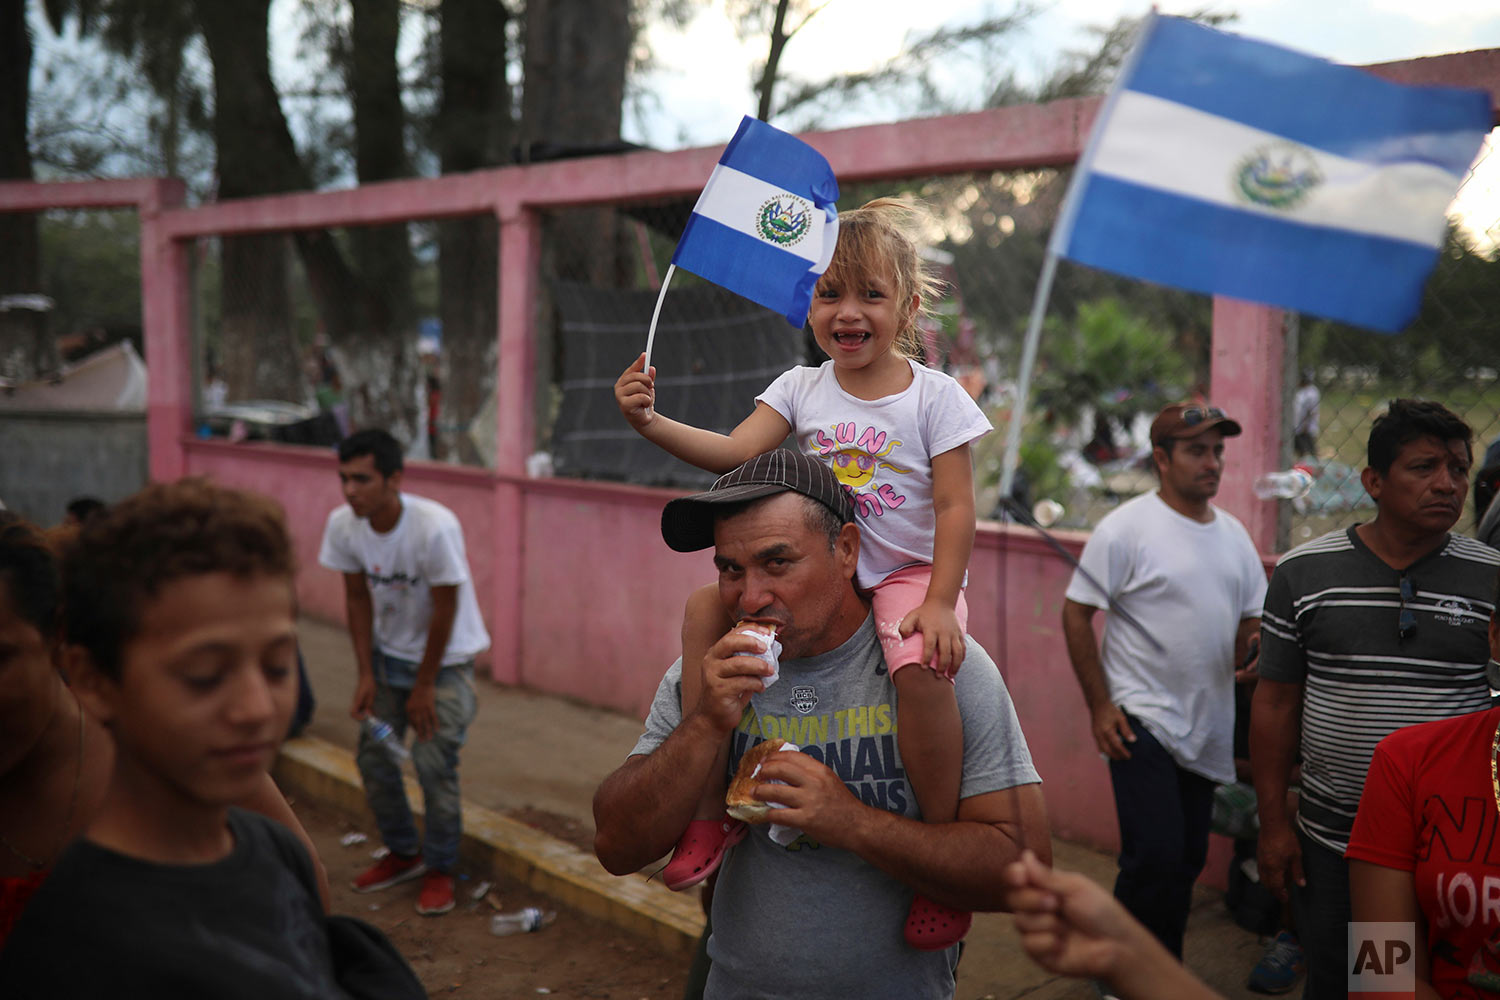 A Salvadoran girl waves her national flag as Central American migrants traveling with the annual Stations of the Cross caravan march to call for migrants' rights and protest the policies of U.S. President Donald Trump and Honduran President Juan Orlando Hernandez, in Matias Romero, Oaxaca state, Mexico, Tuesday, April 3, 2018.(AP Photo/Felix Marquez)